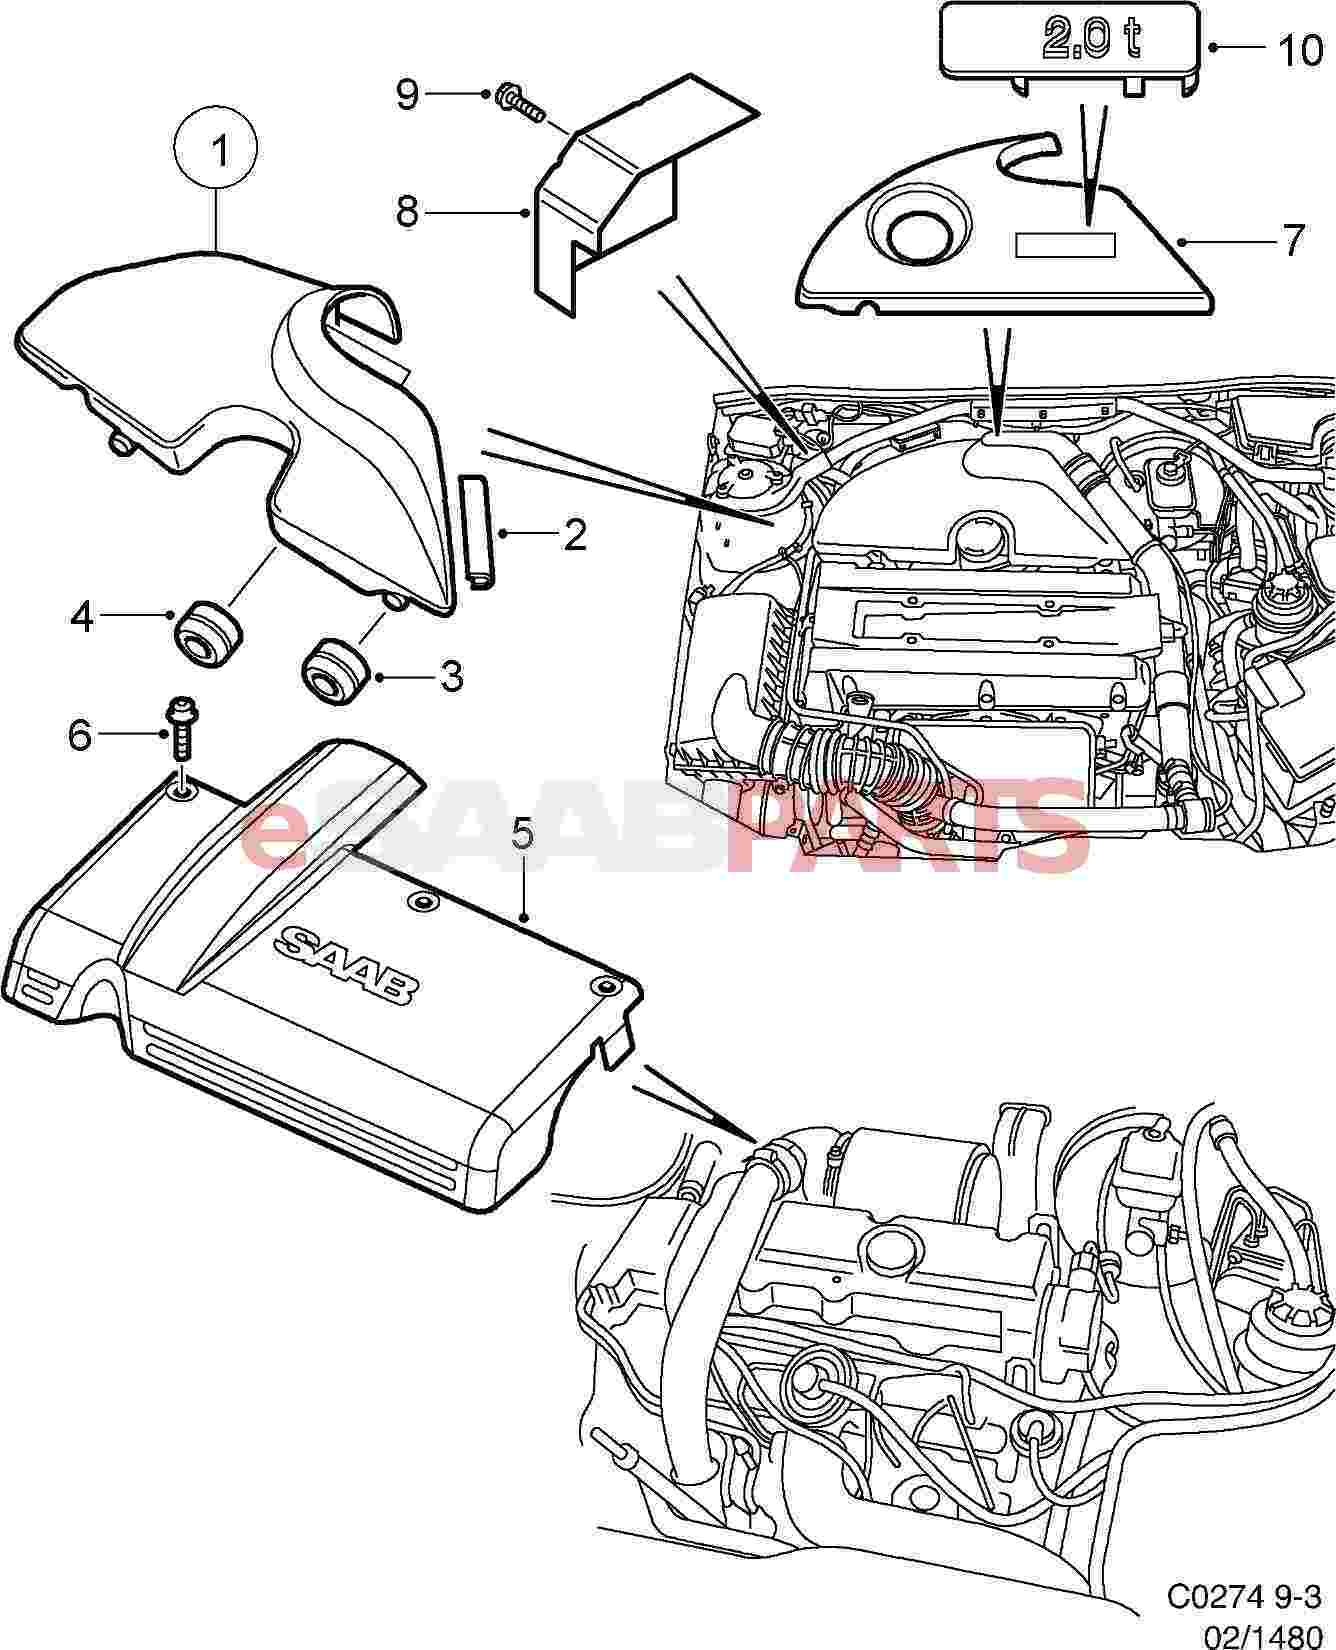 esaabparts com saab 9 3 9400 u003e engine parts u003e engine external rh esaabparts com saab 9-3 engine manual saab 9-3 2.2 tid engine diagram